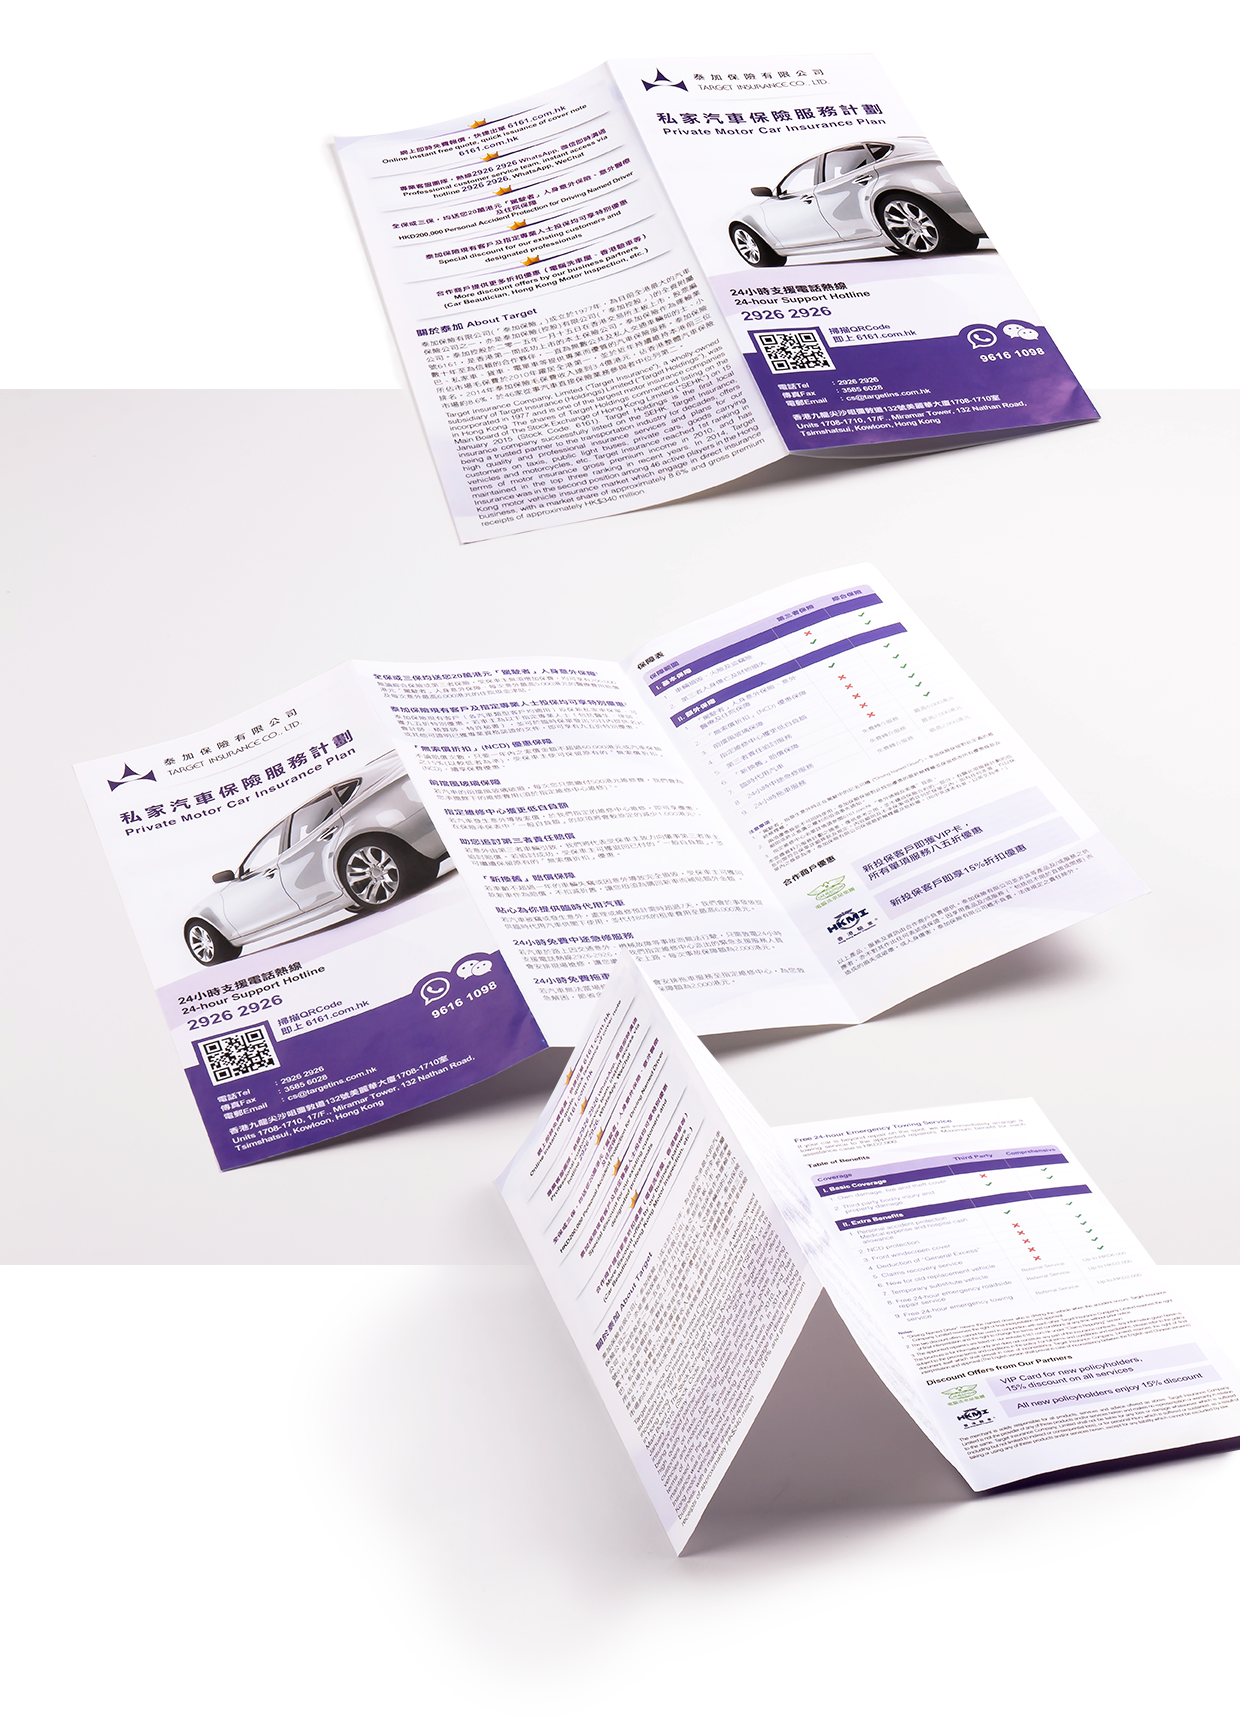 Target Insurance Company Leaflet